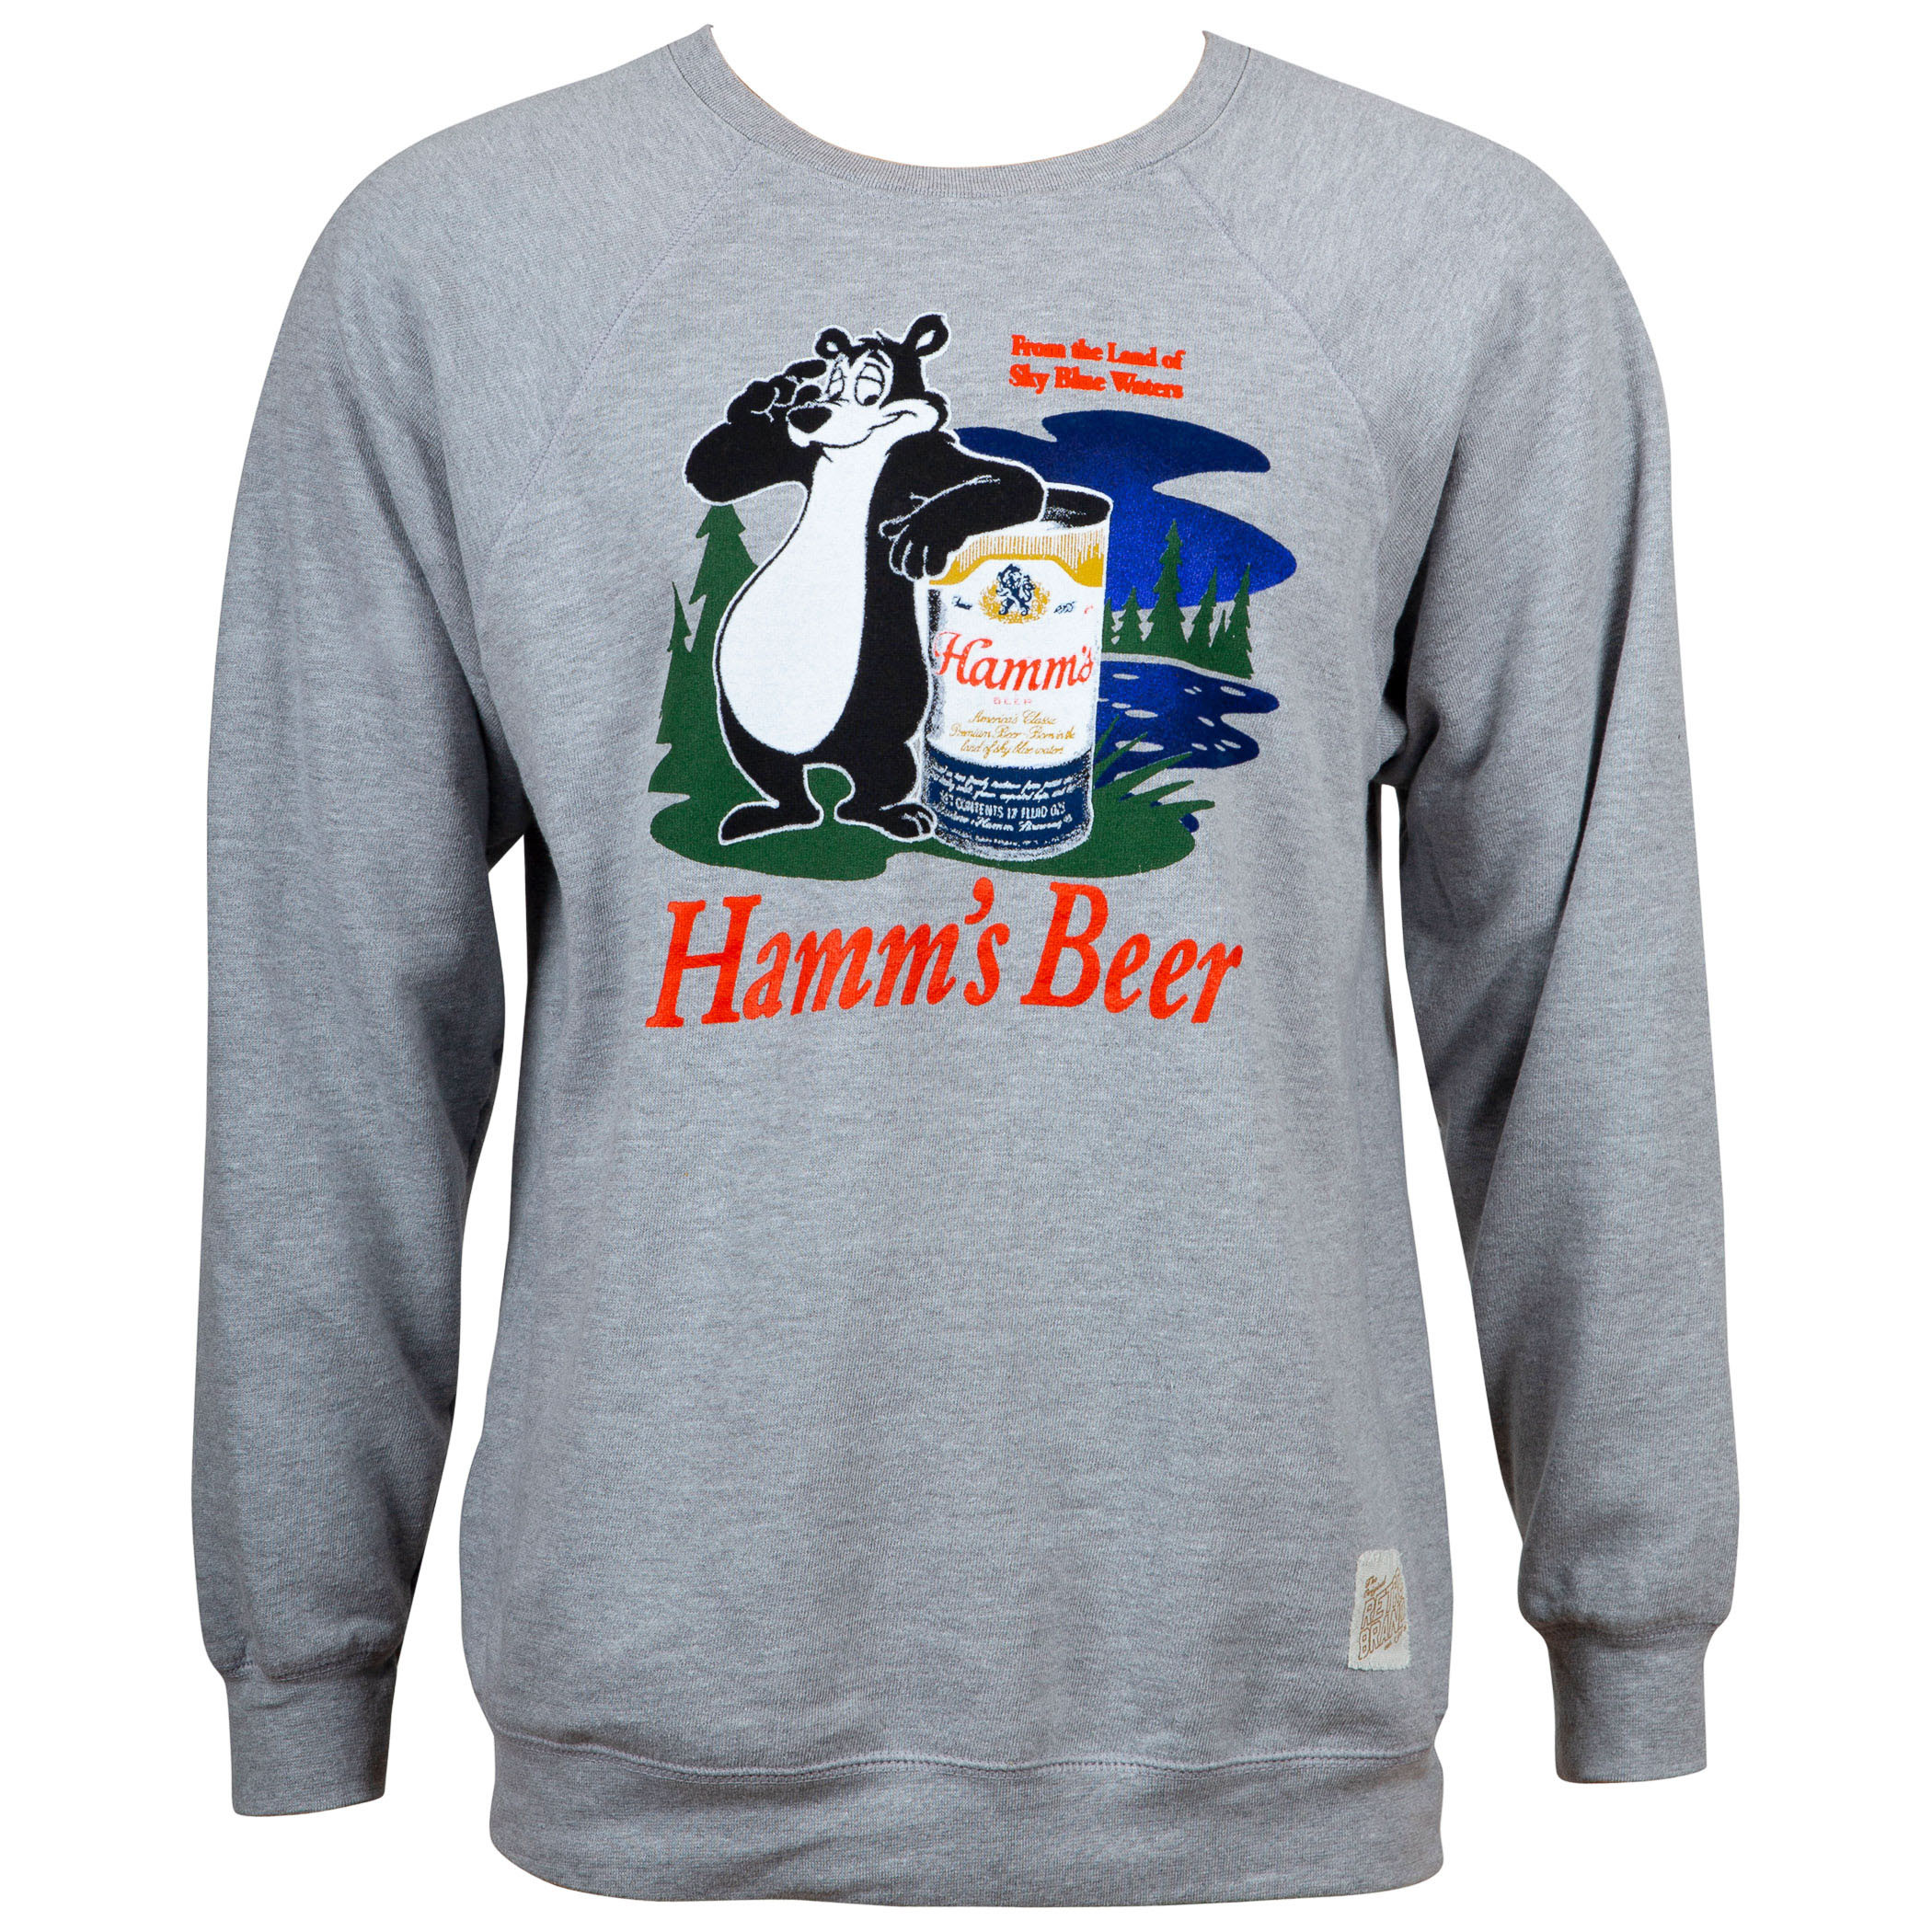 Hamm's Beer Retro Bear Logo Men's Heather Grey Sweatshirt